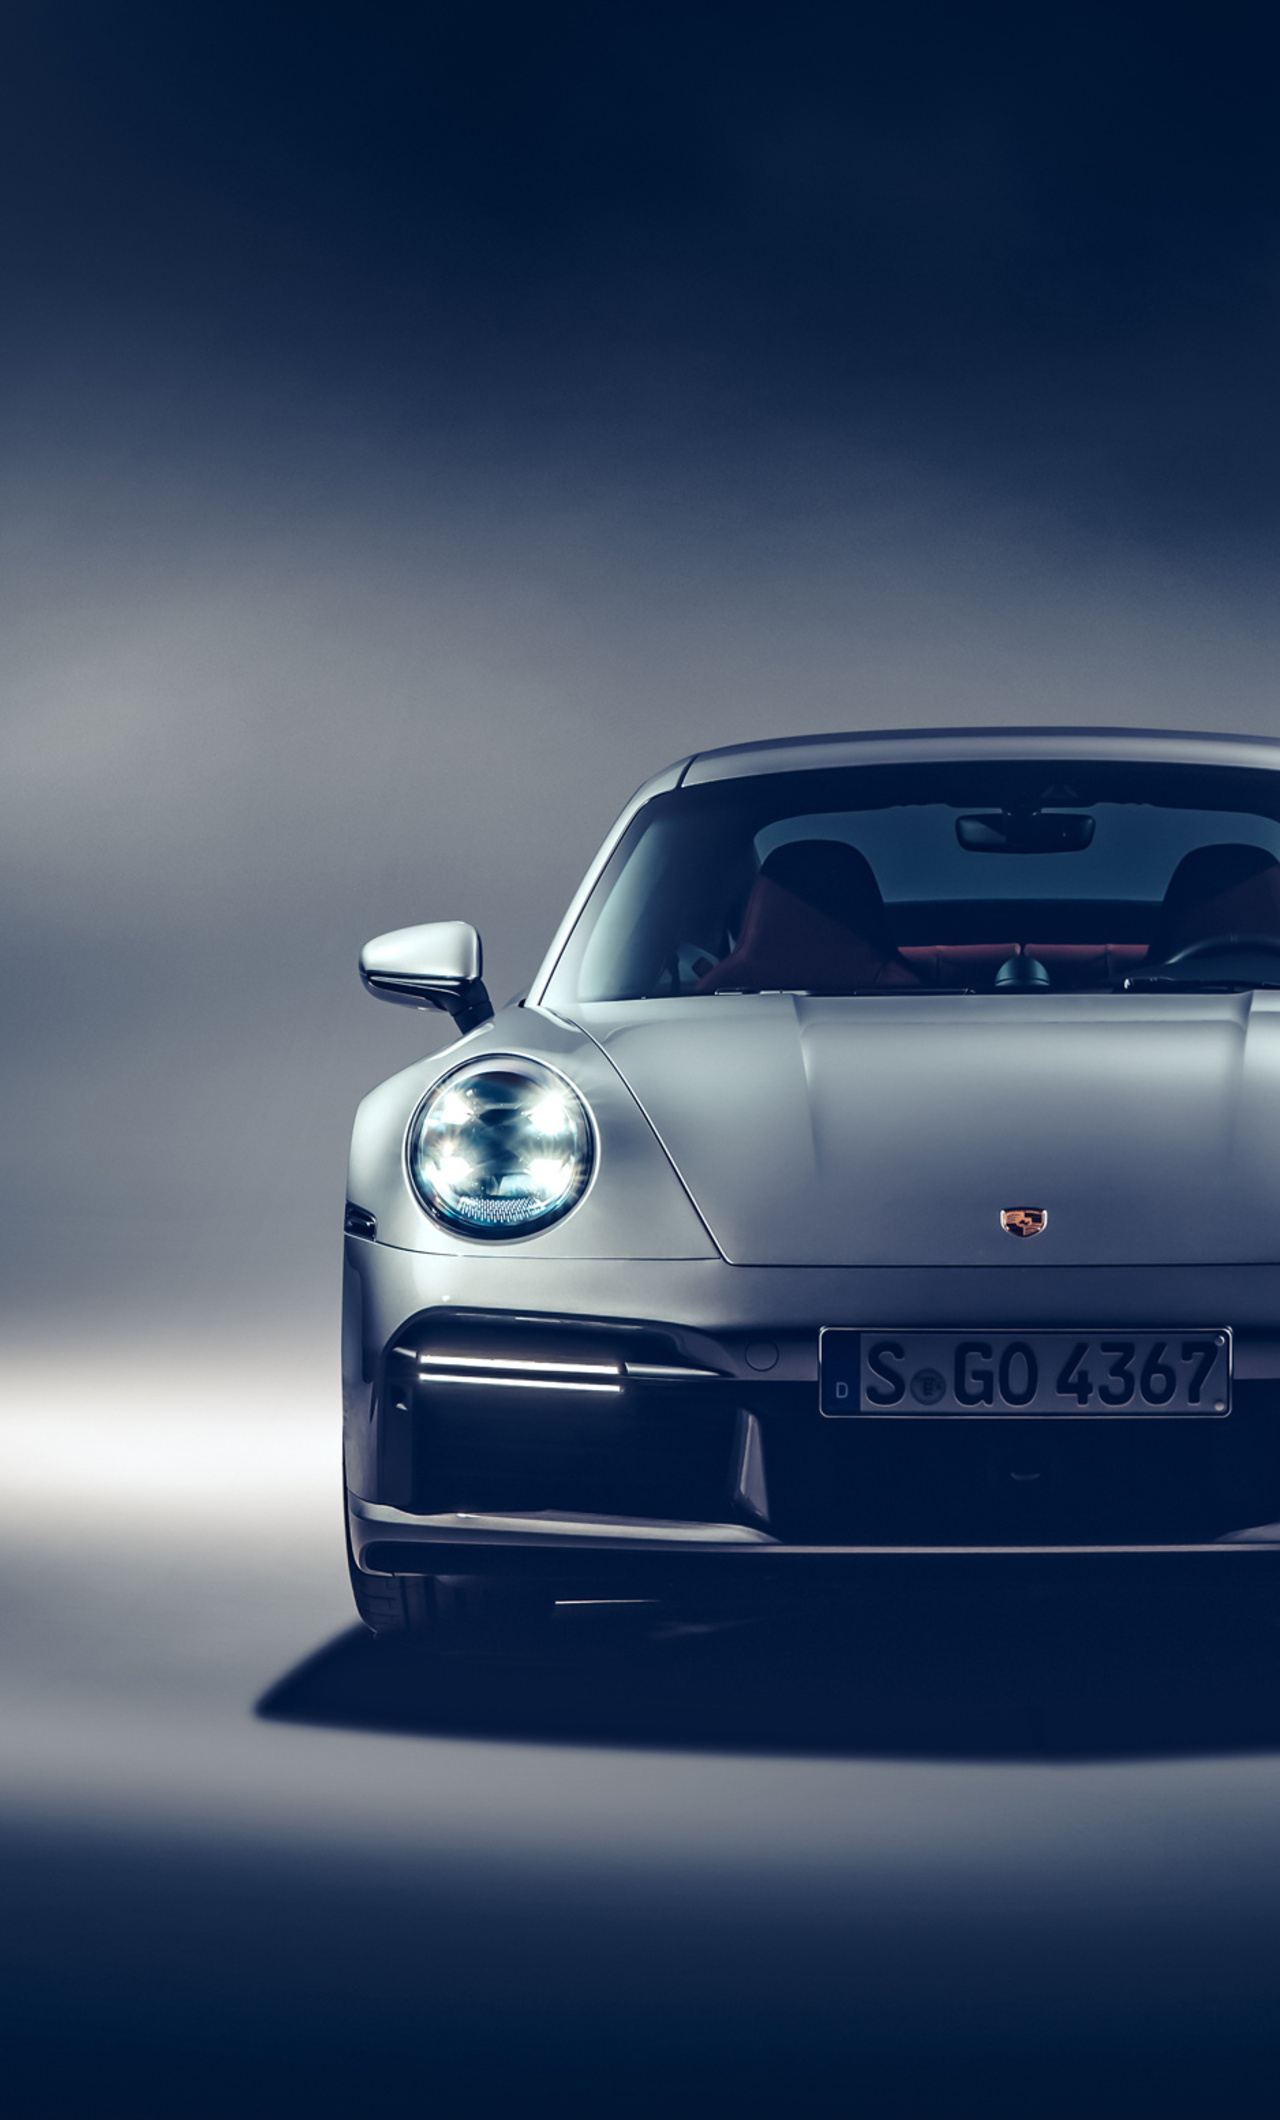 1280x2120 5k 2021 Porsche 911 Turbo S Iphone 6 Hd 4k Wallpapers Images Backgrounds Photos And Pictures